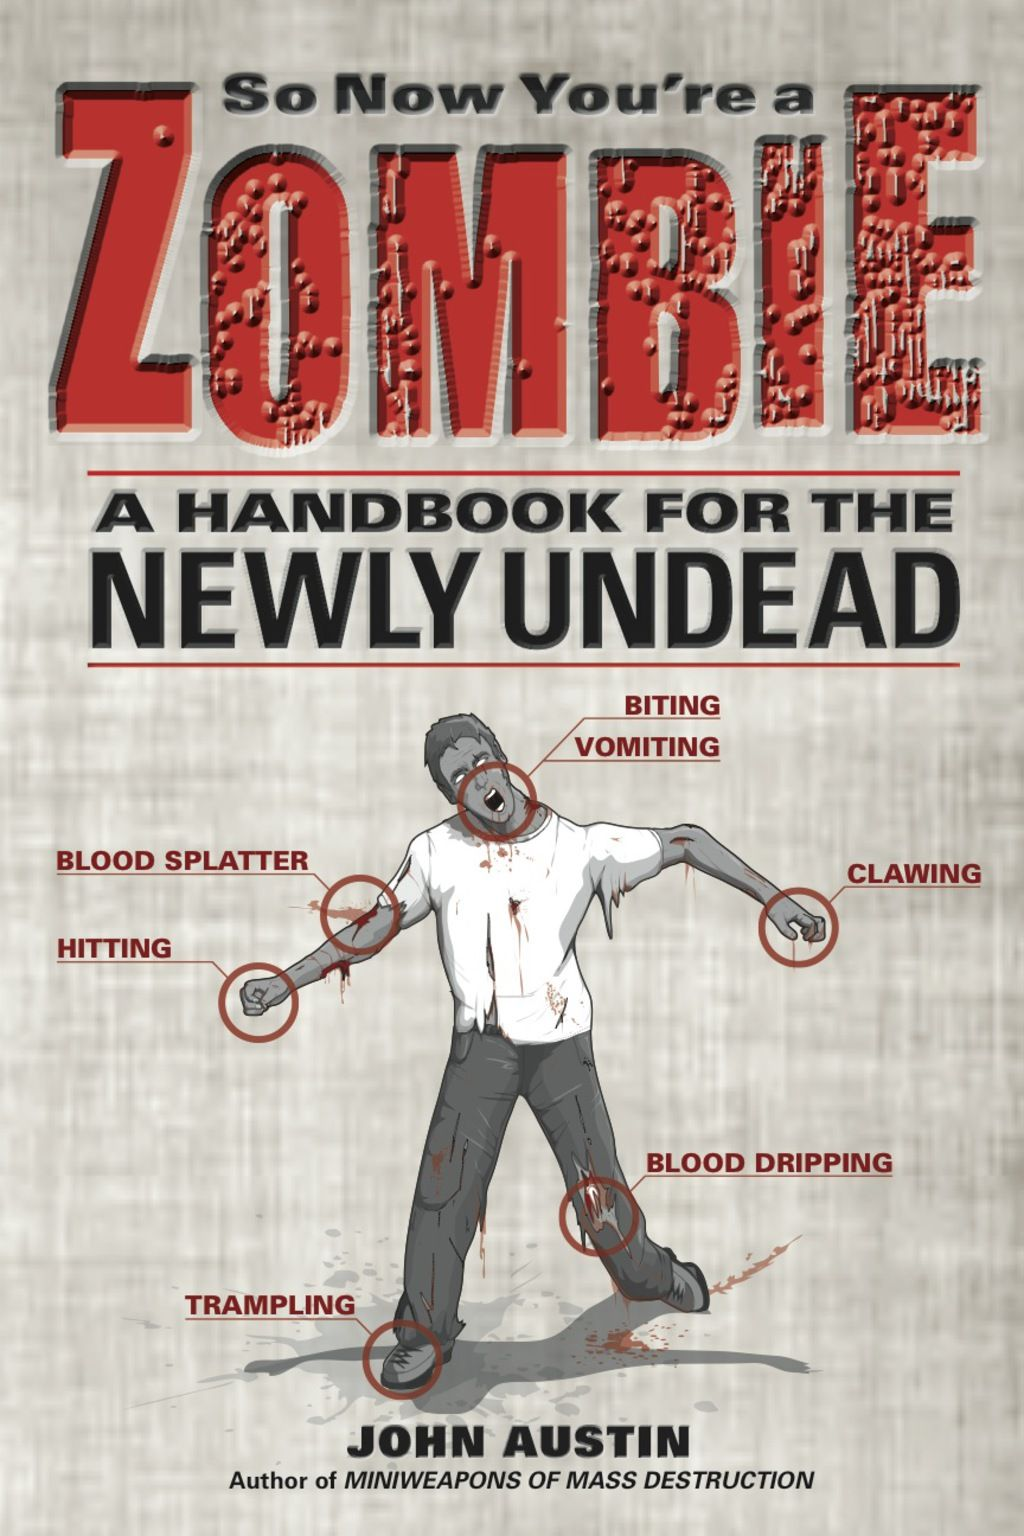 So Now You're a Zombie A Handbook for the Newly Undead